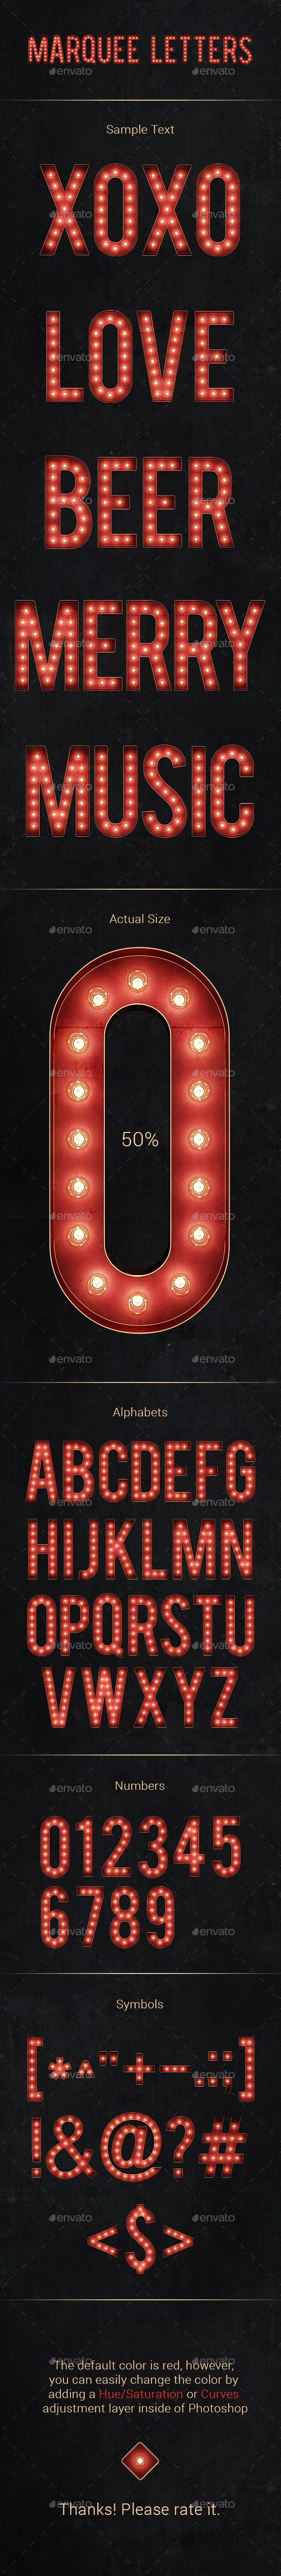 Marquee Letters — Photoshop PSD #colorful #party • Available here → https://graphicriver.net/item/marquee-letters/13308252?ref=pxcr